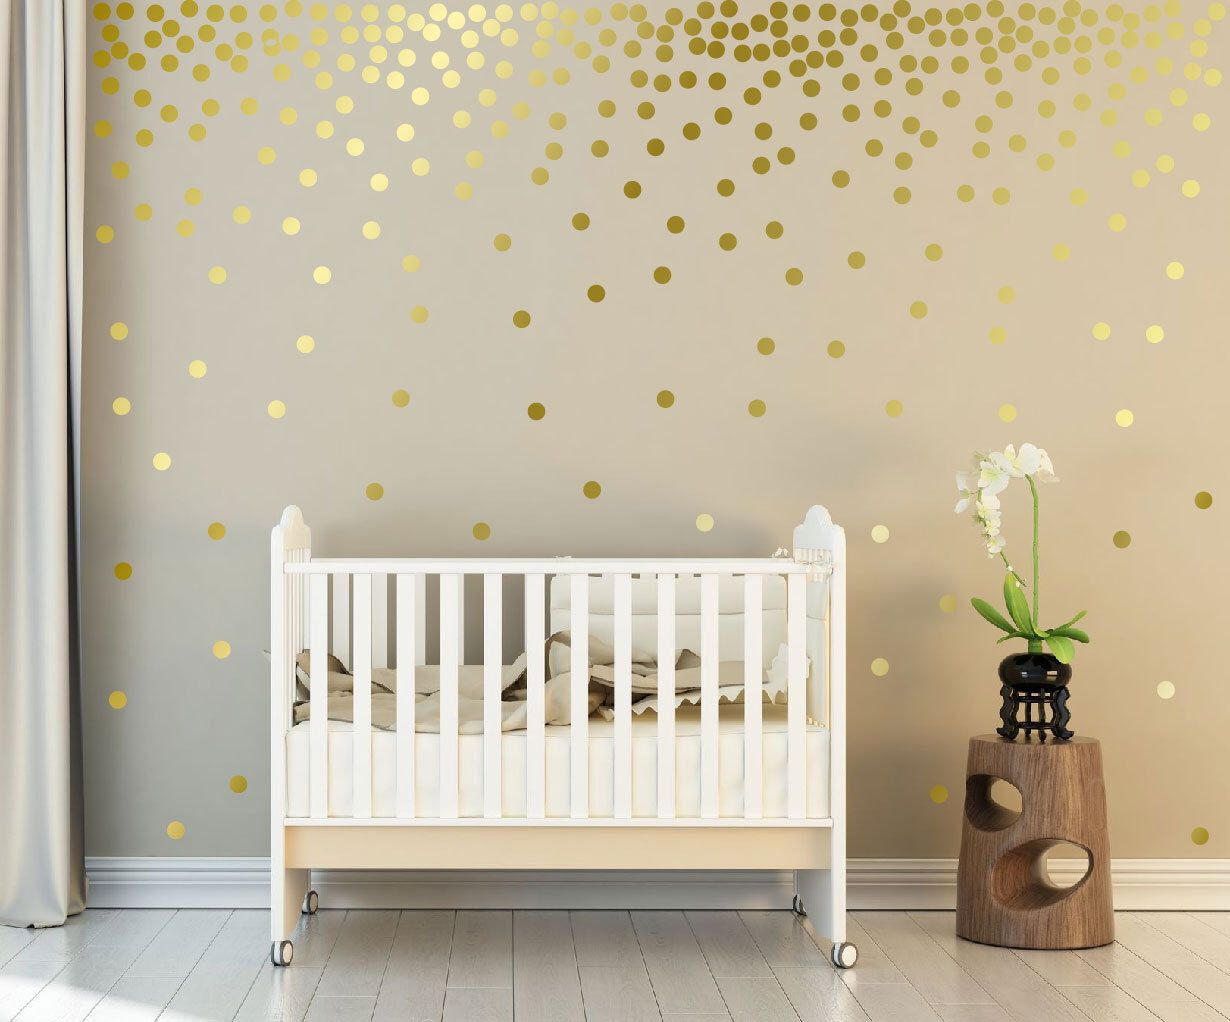 Metallic Gold Wall Decals Polka Dots Wall Decor 1 Inch 152